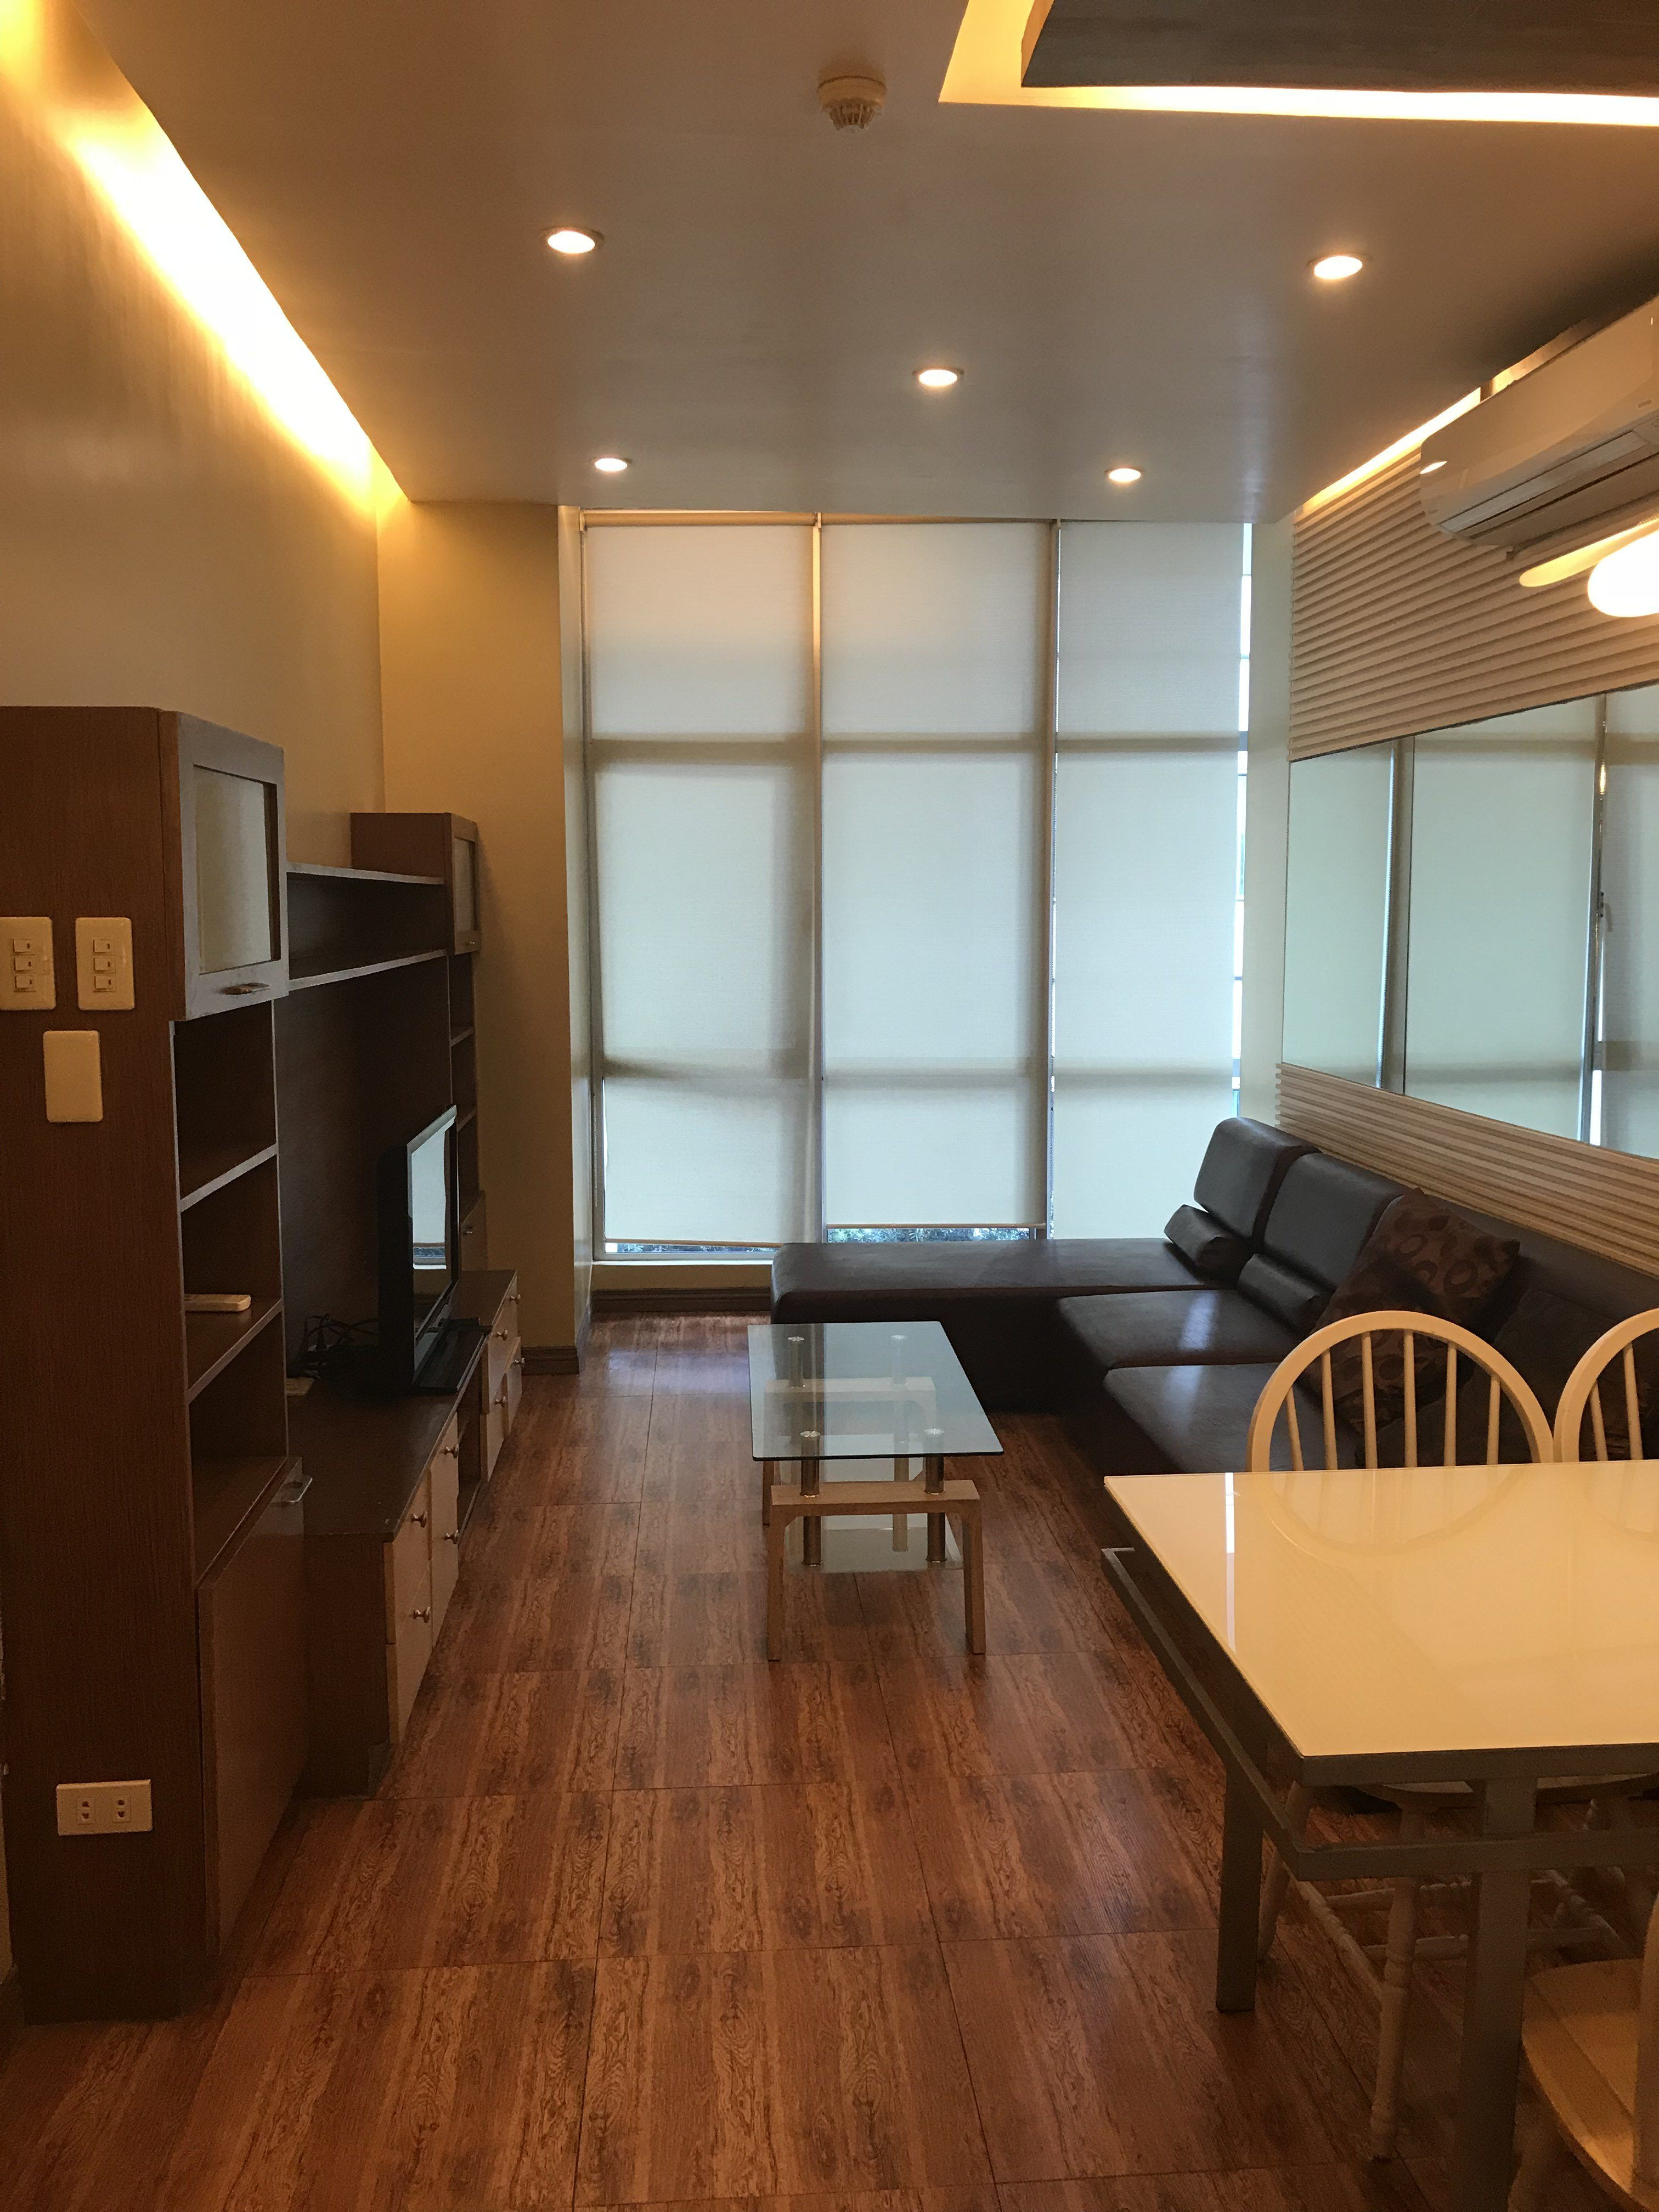 bedroom condo for rent in bgc taguig city sqm sapphire residences th also rh pinterest